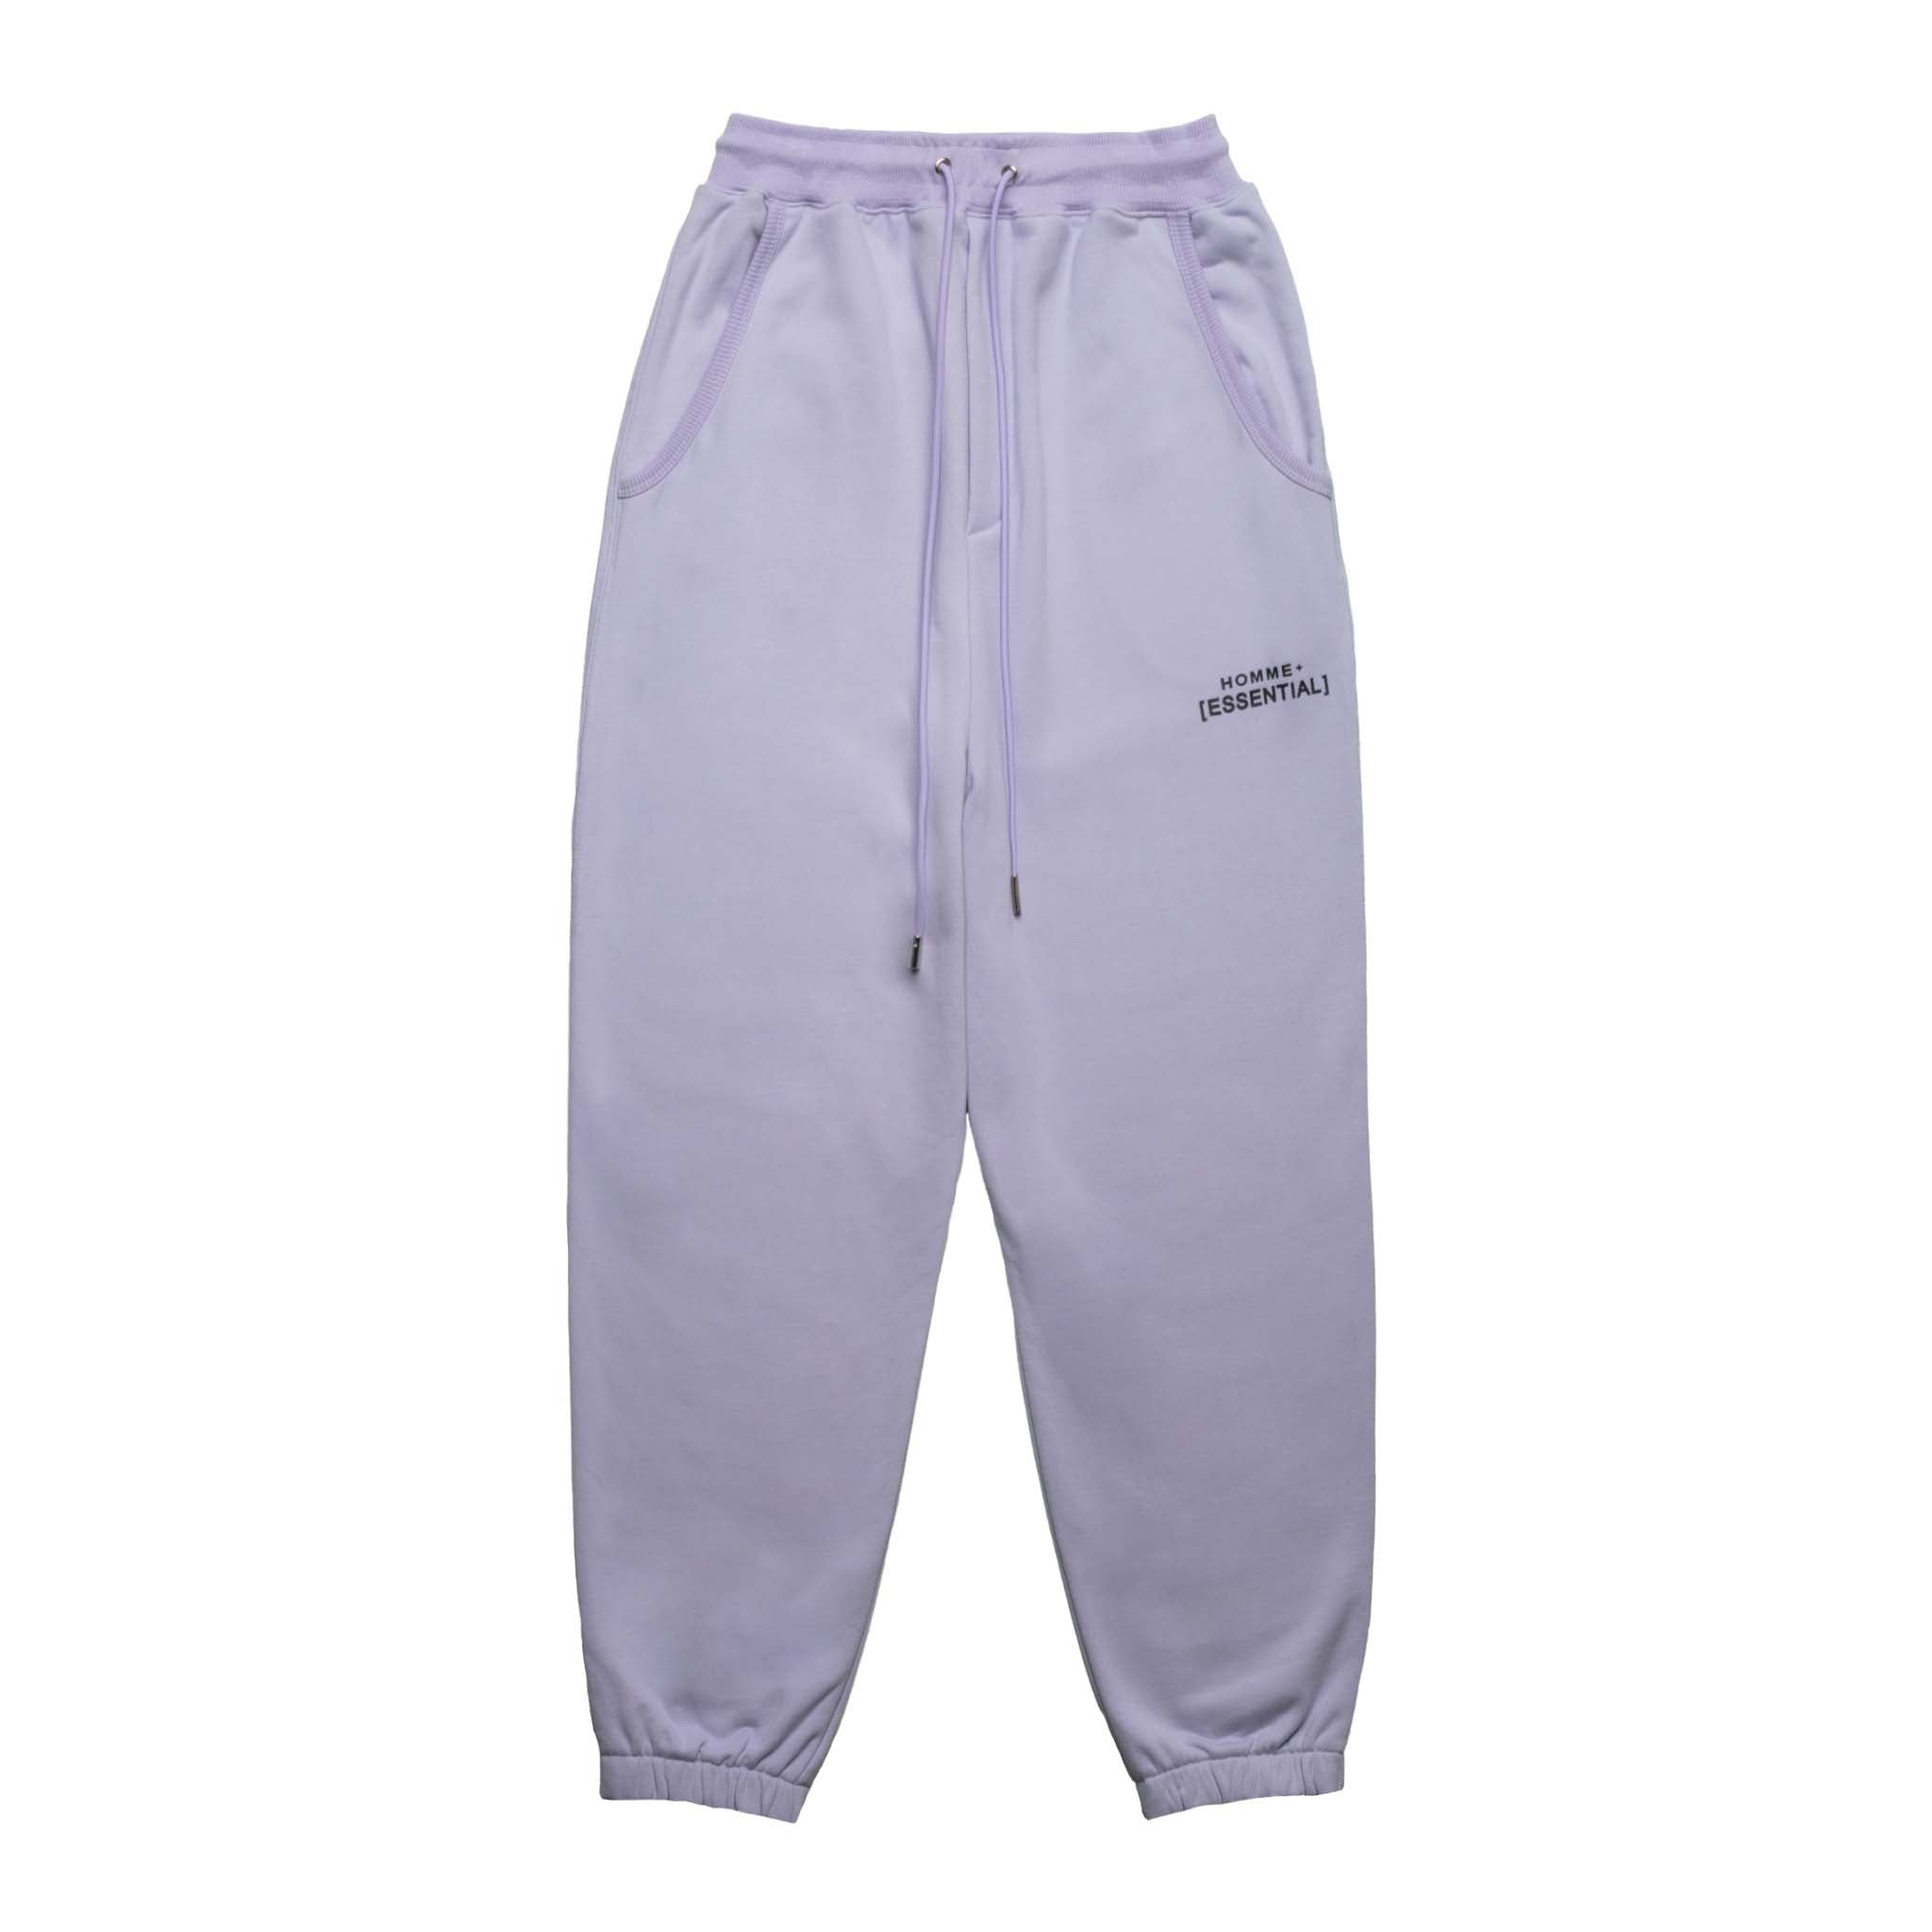 HOMME+ 'ESSENTIAL' Knit Jogger Lilac